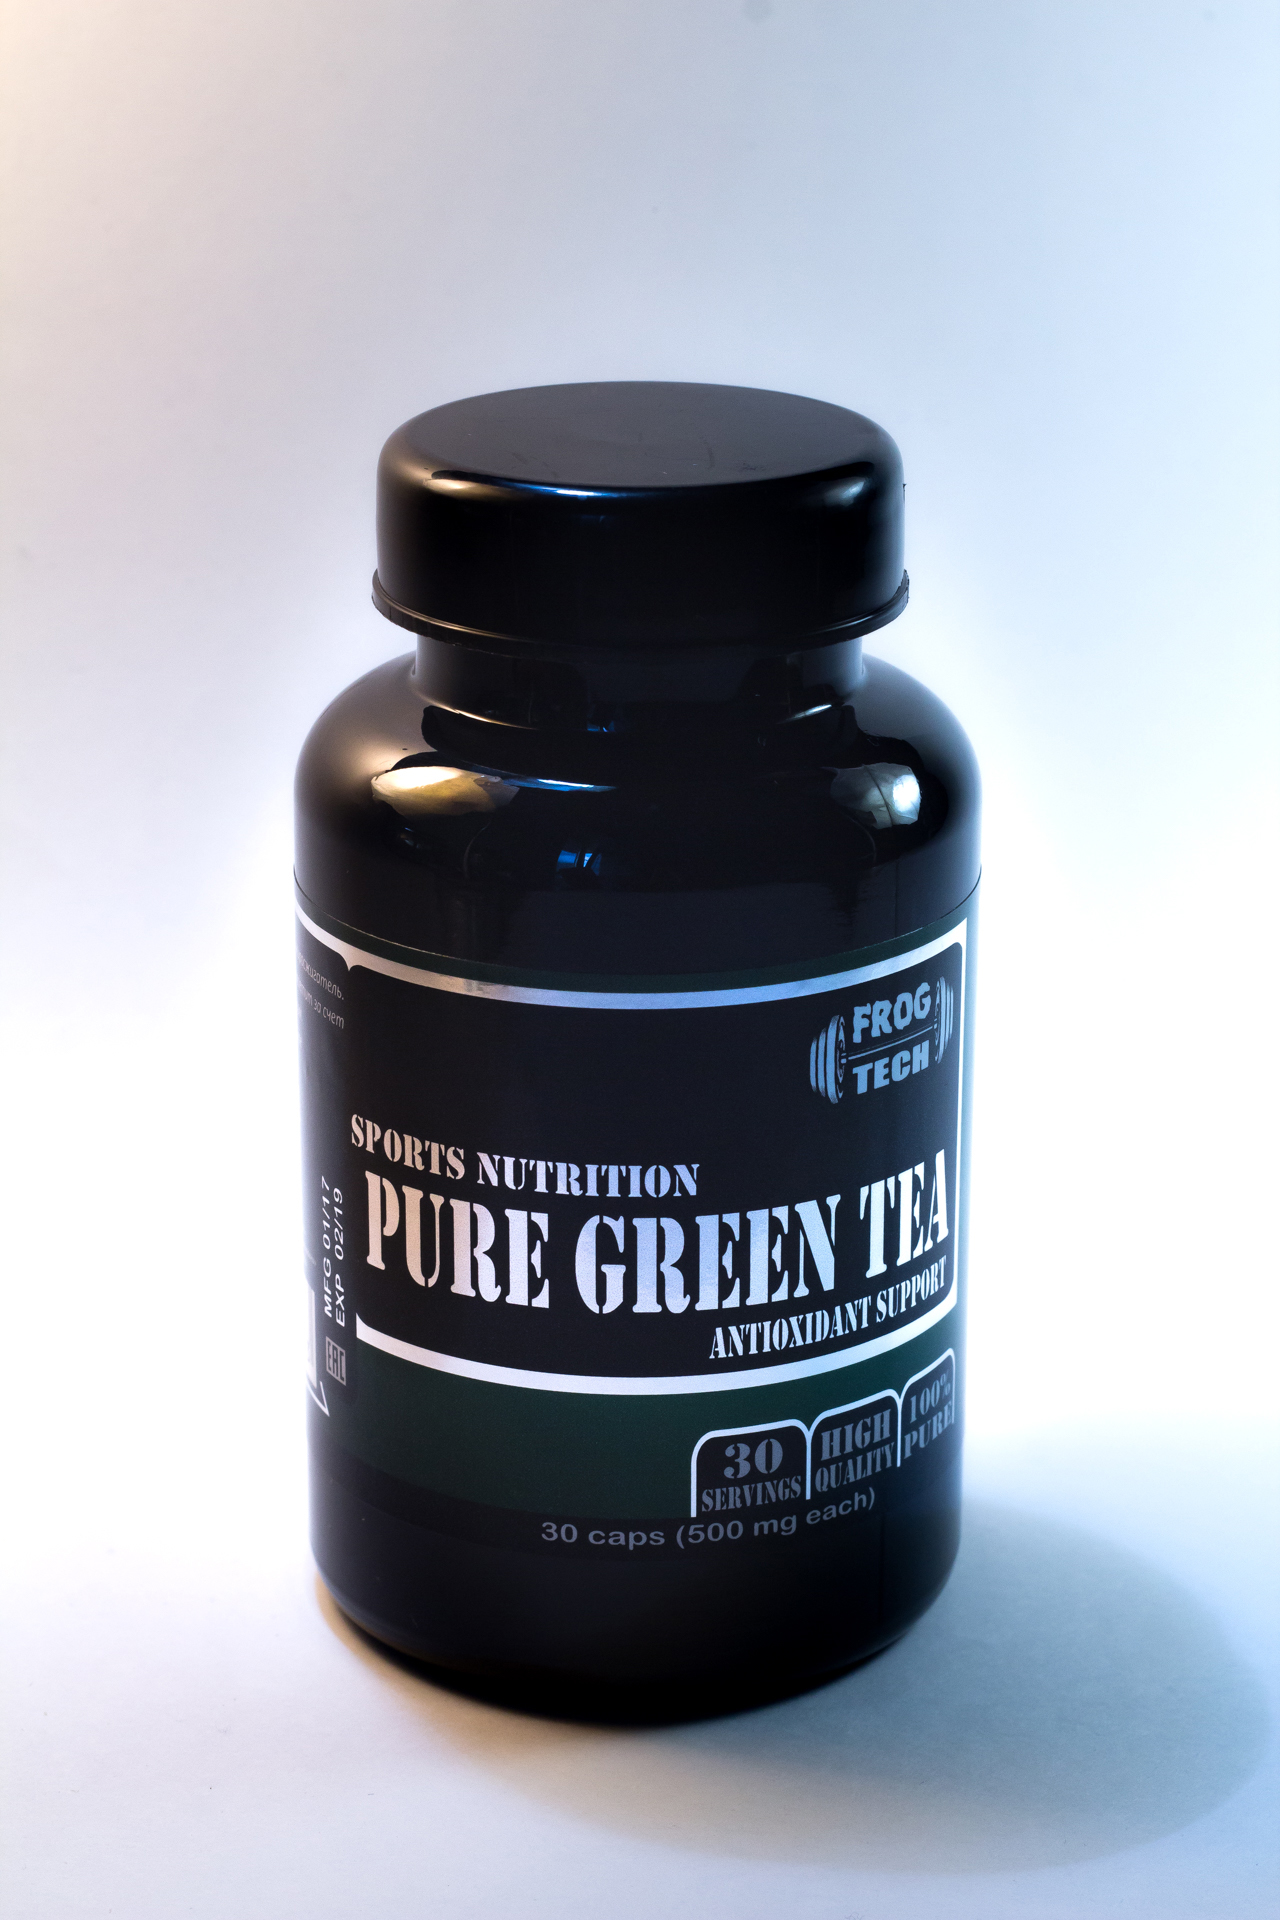 Frog Tech Pure Green Tea Extract